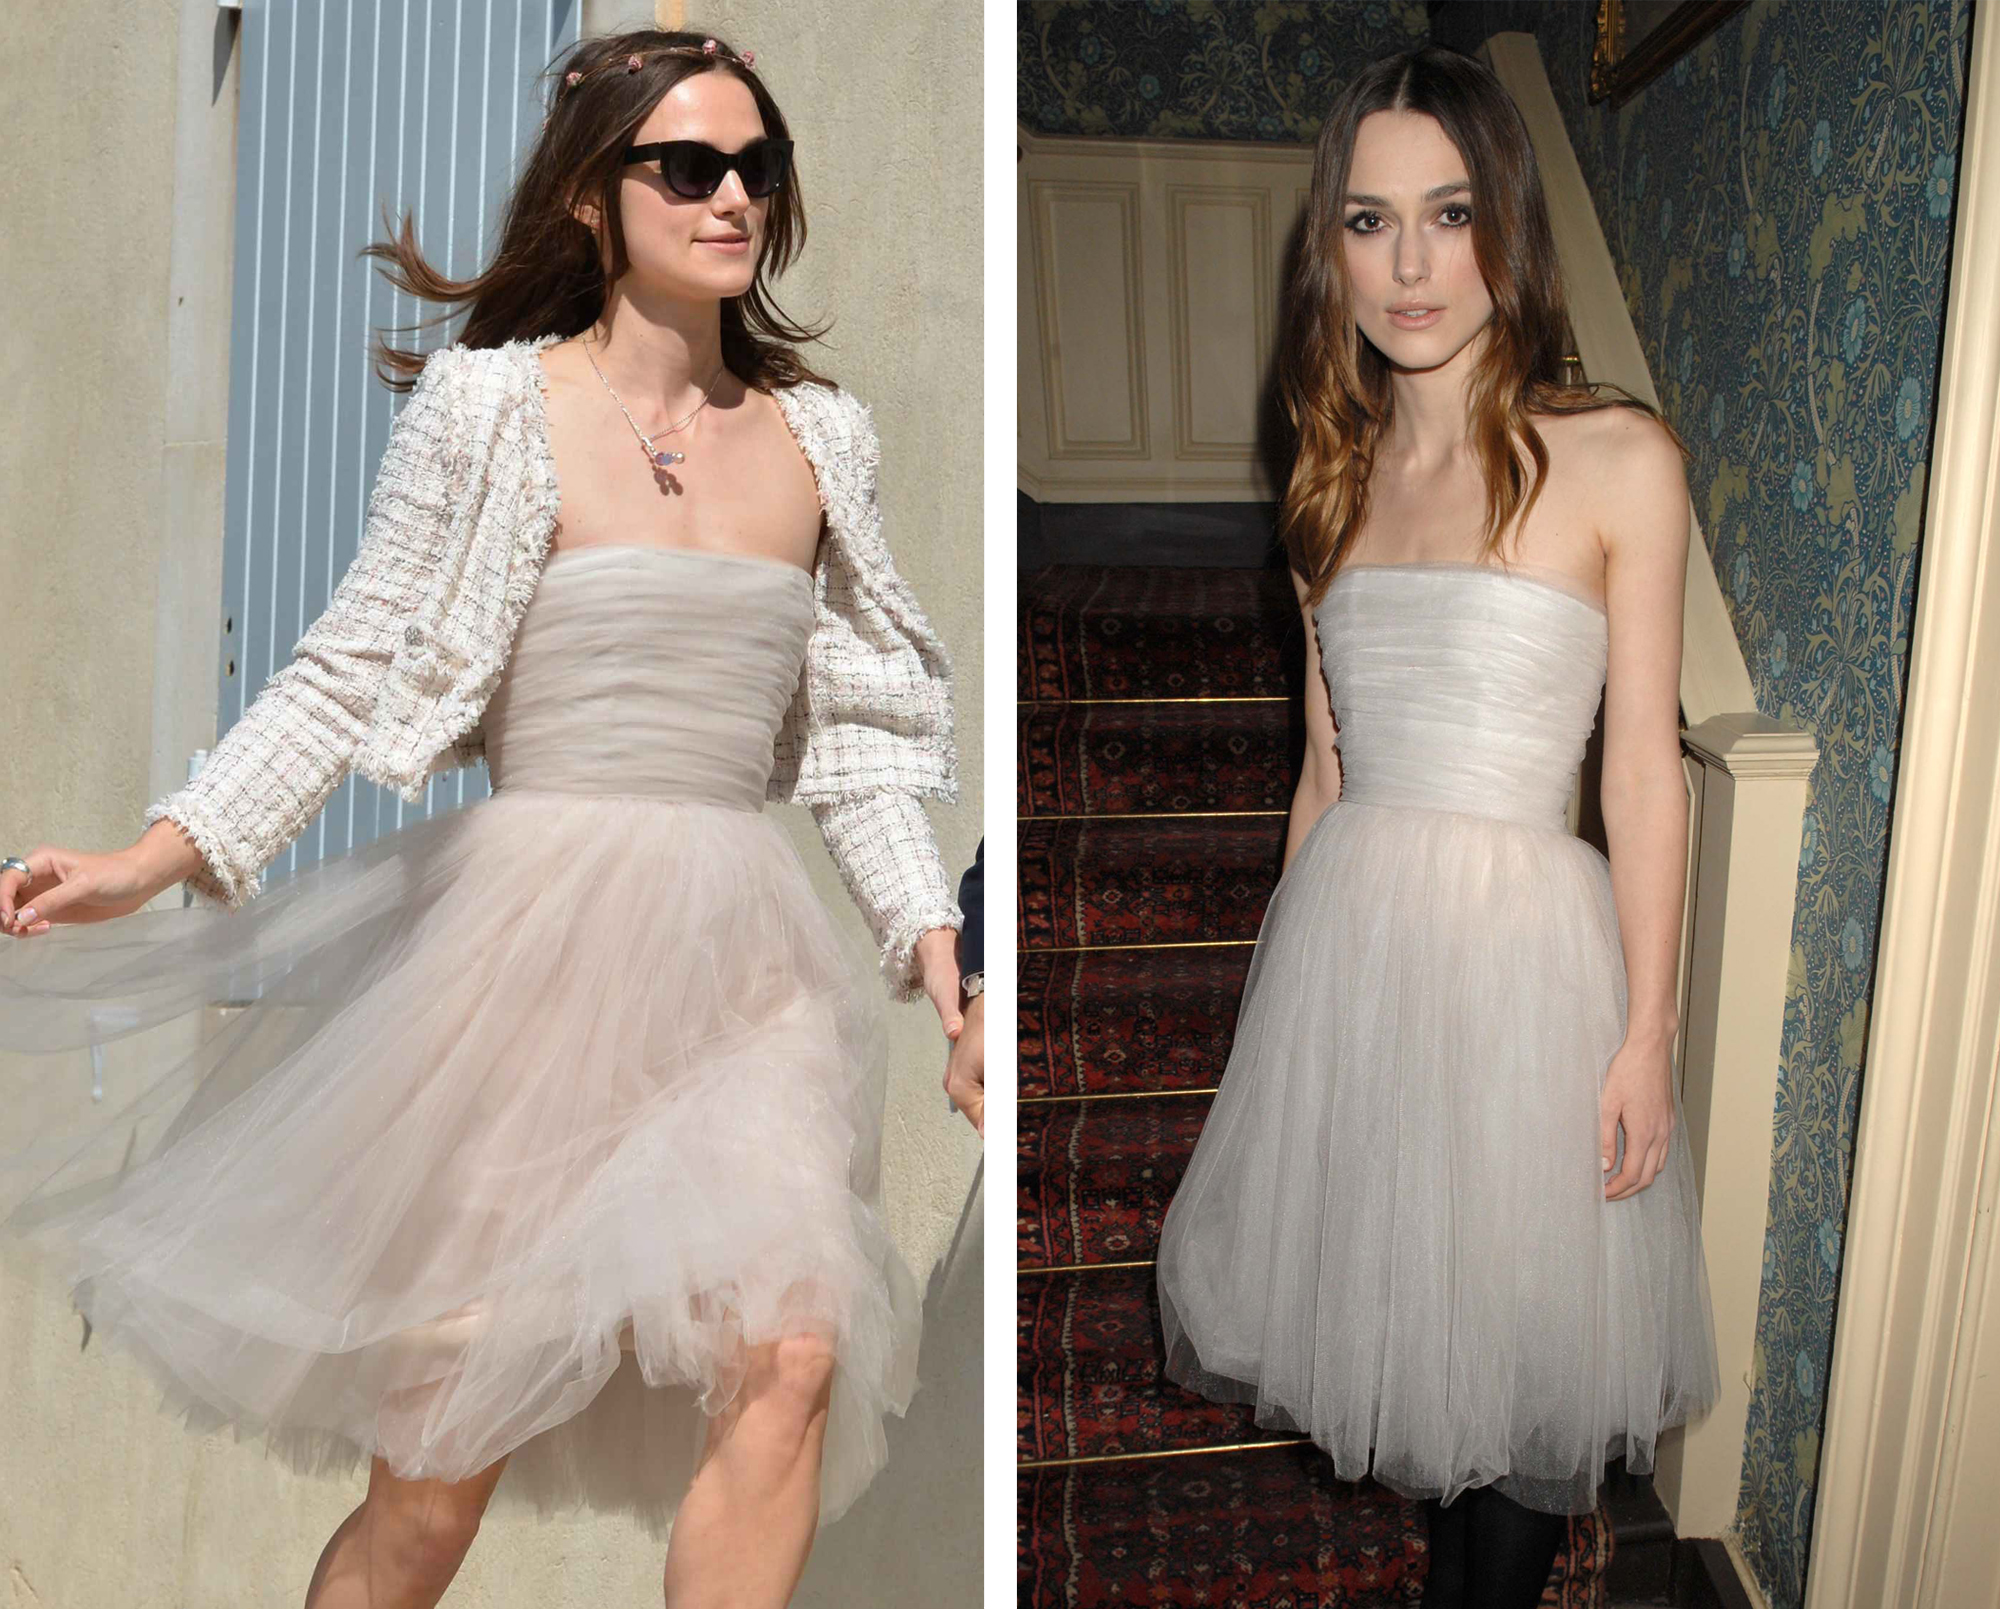 Keira Knightley marries James Righton in 'recycled' wedding dress in south of France